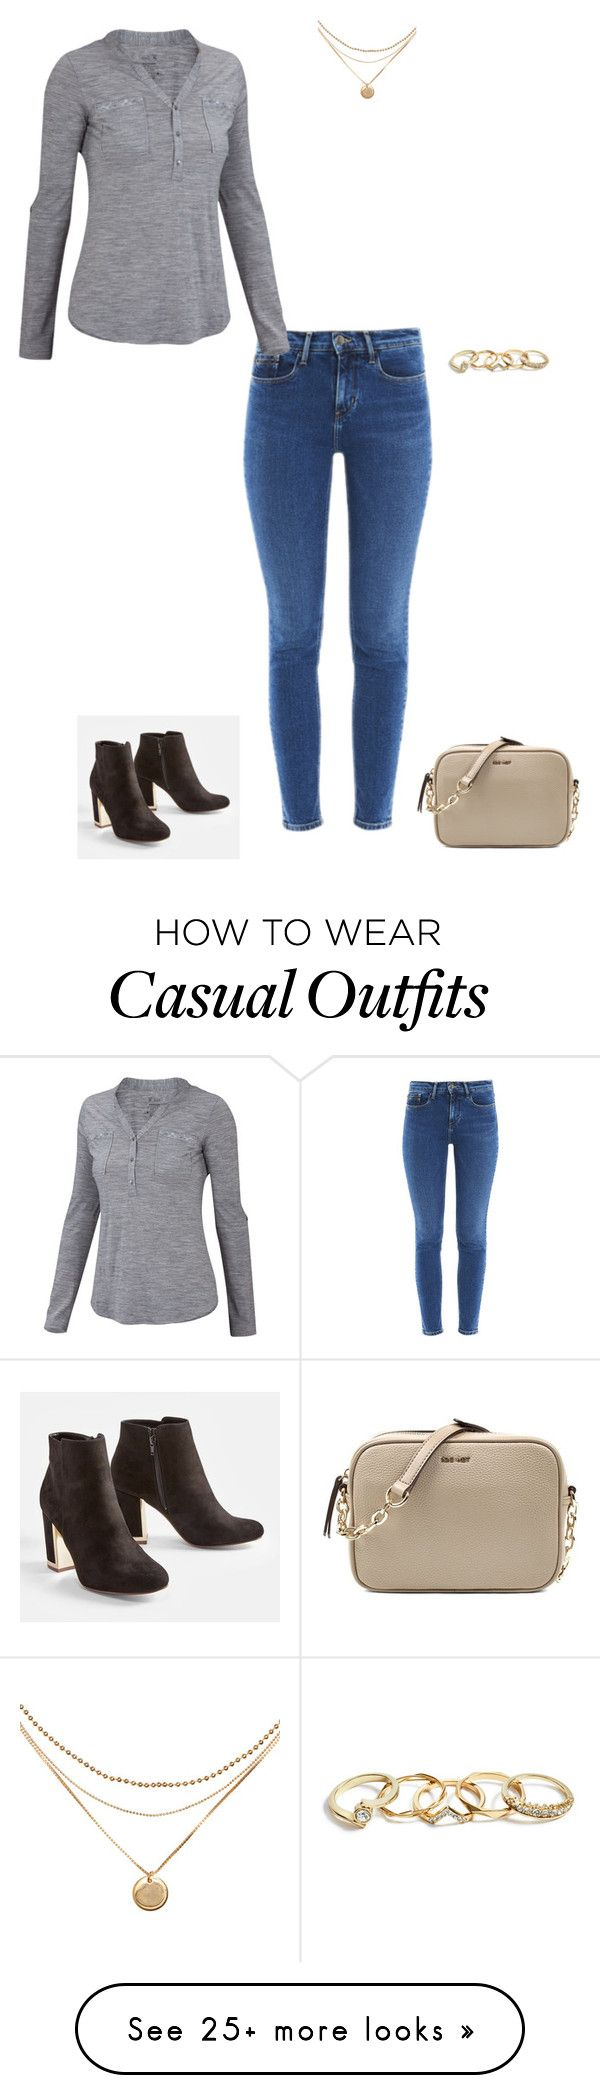 """Casual"" by missblocke on Polyvore featuring Calvin Klein, ibex, JustFab, GUESS and Nine West"